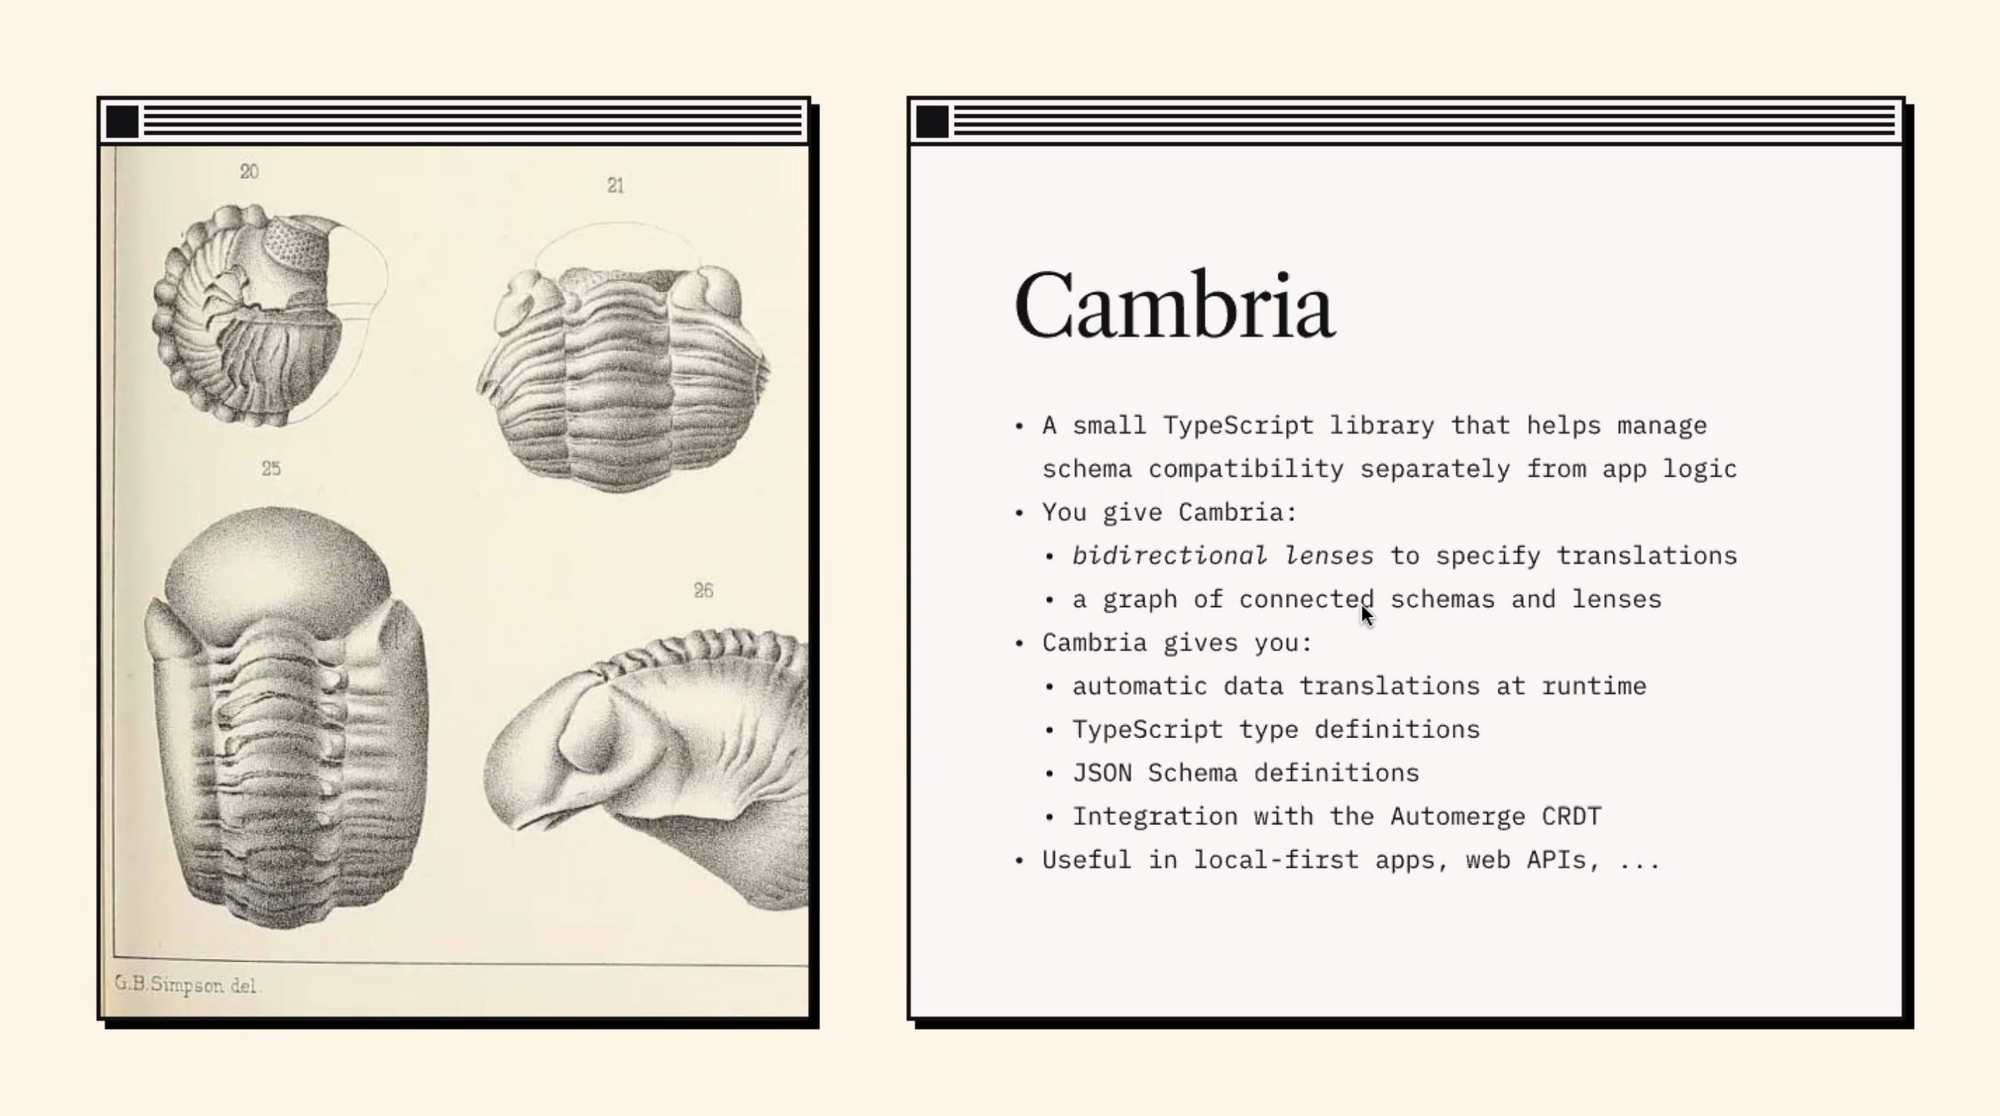 Project Cambria Overview with Geoffrey Litt and Peter van Hardenberg